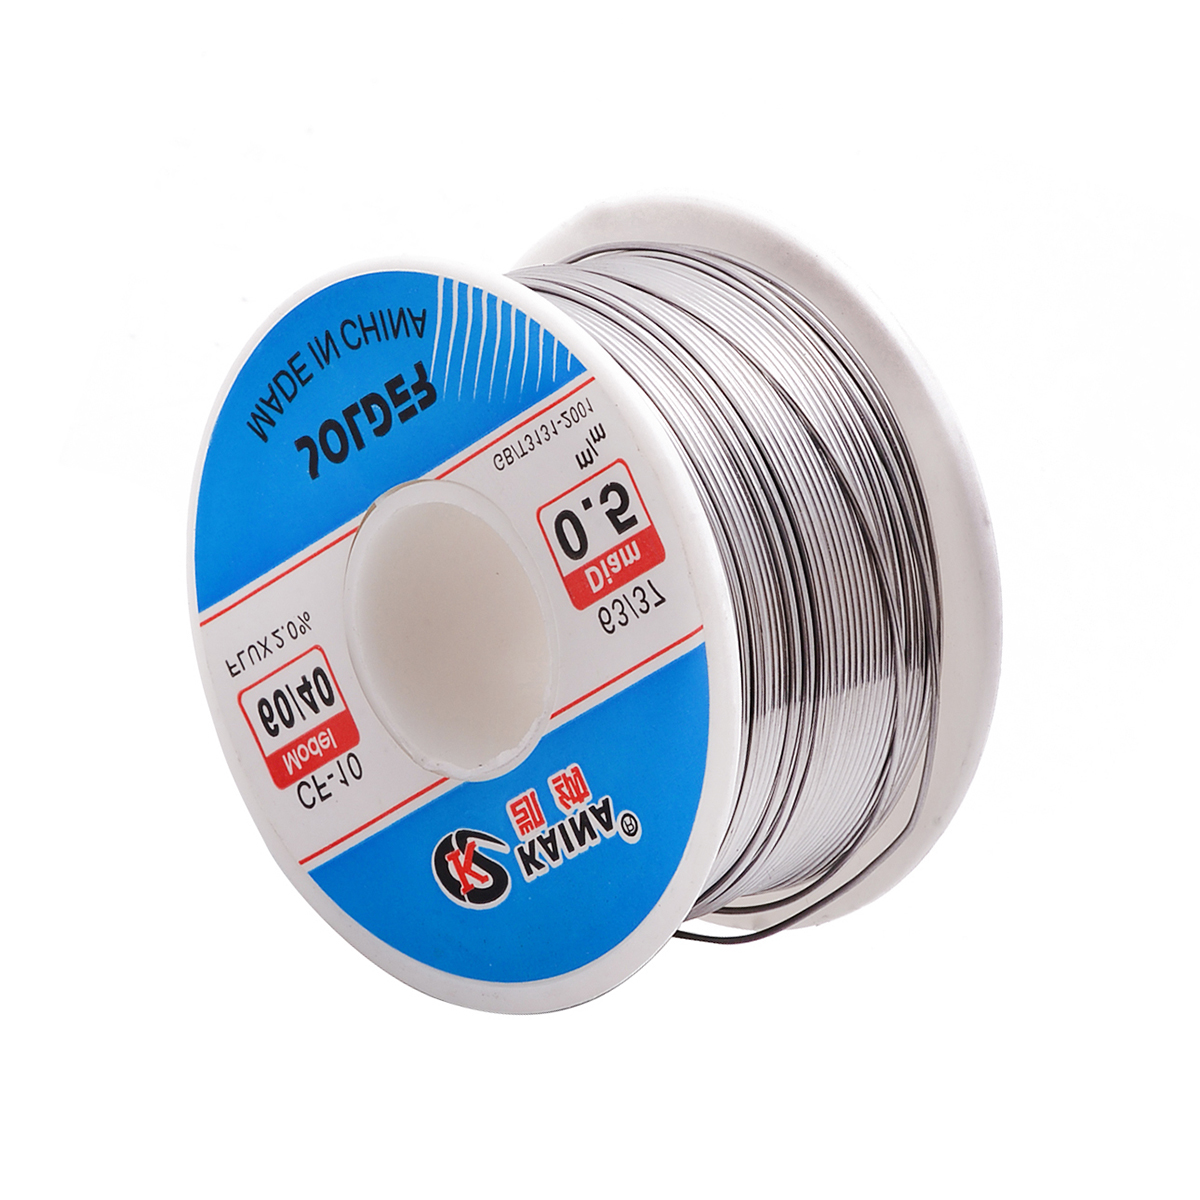 Good Solderability <font><b>Solder</b></font> Wire Sn 60/Pb 40 0.5mm 100g Mayitr Rosin Core Tin Lead Roll Soldering Welding Flux 2.0% Iron Wire Reel image